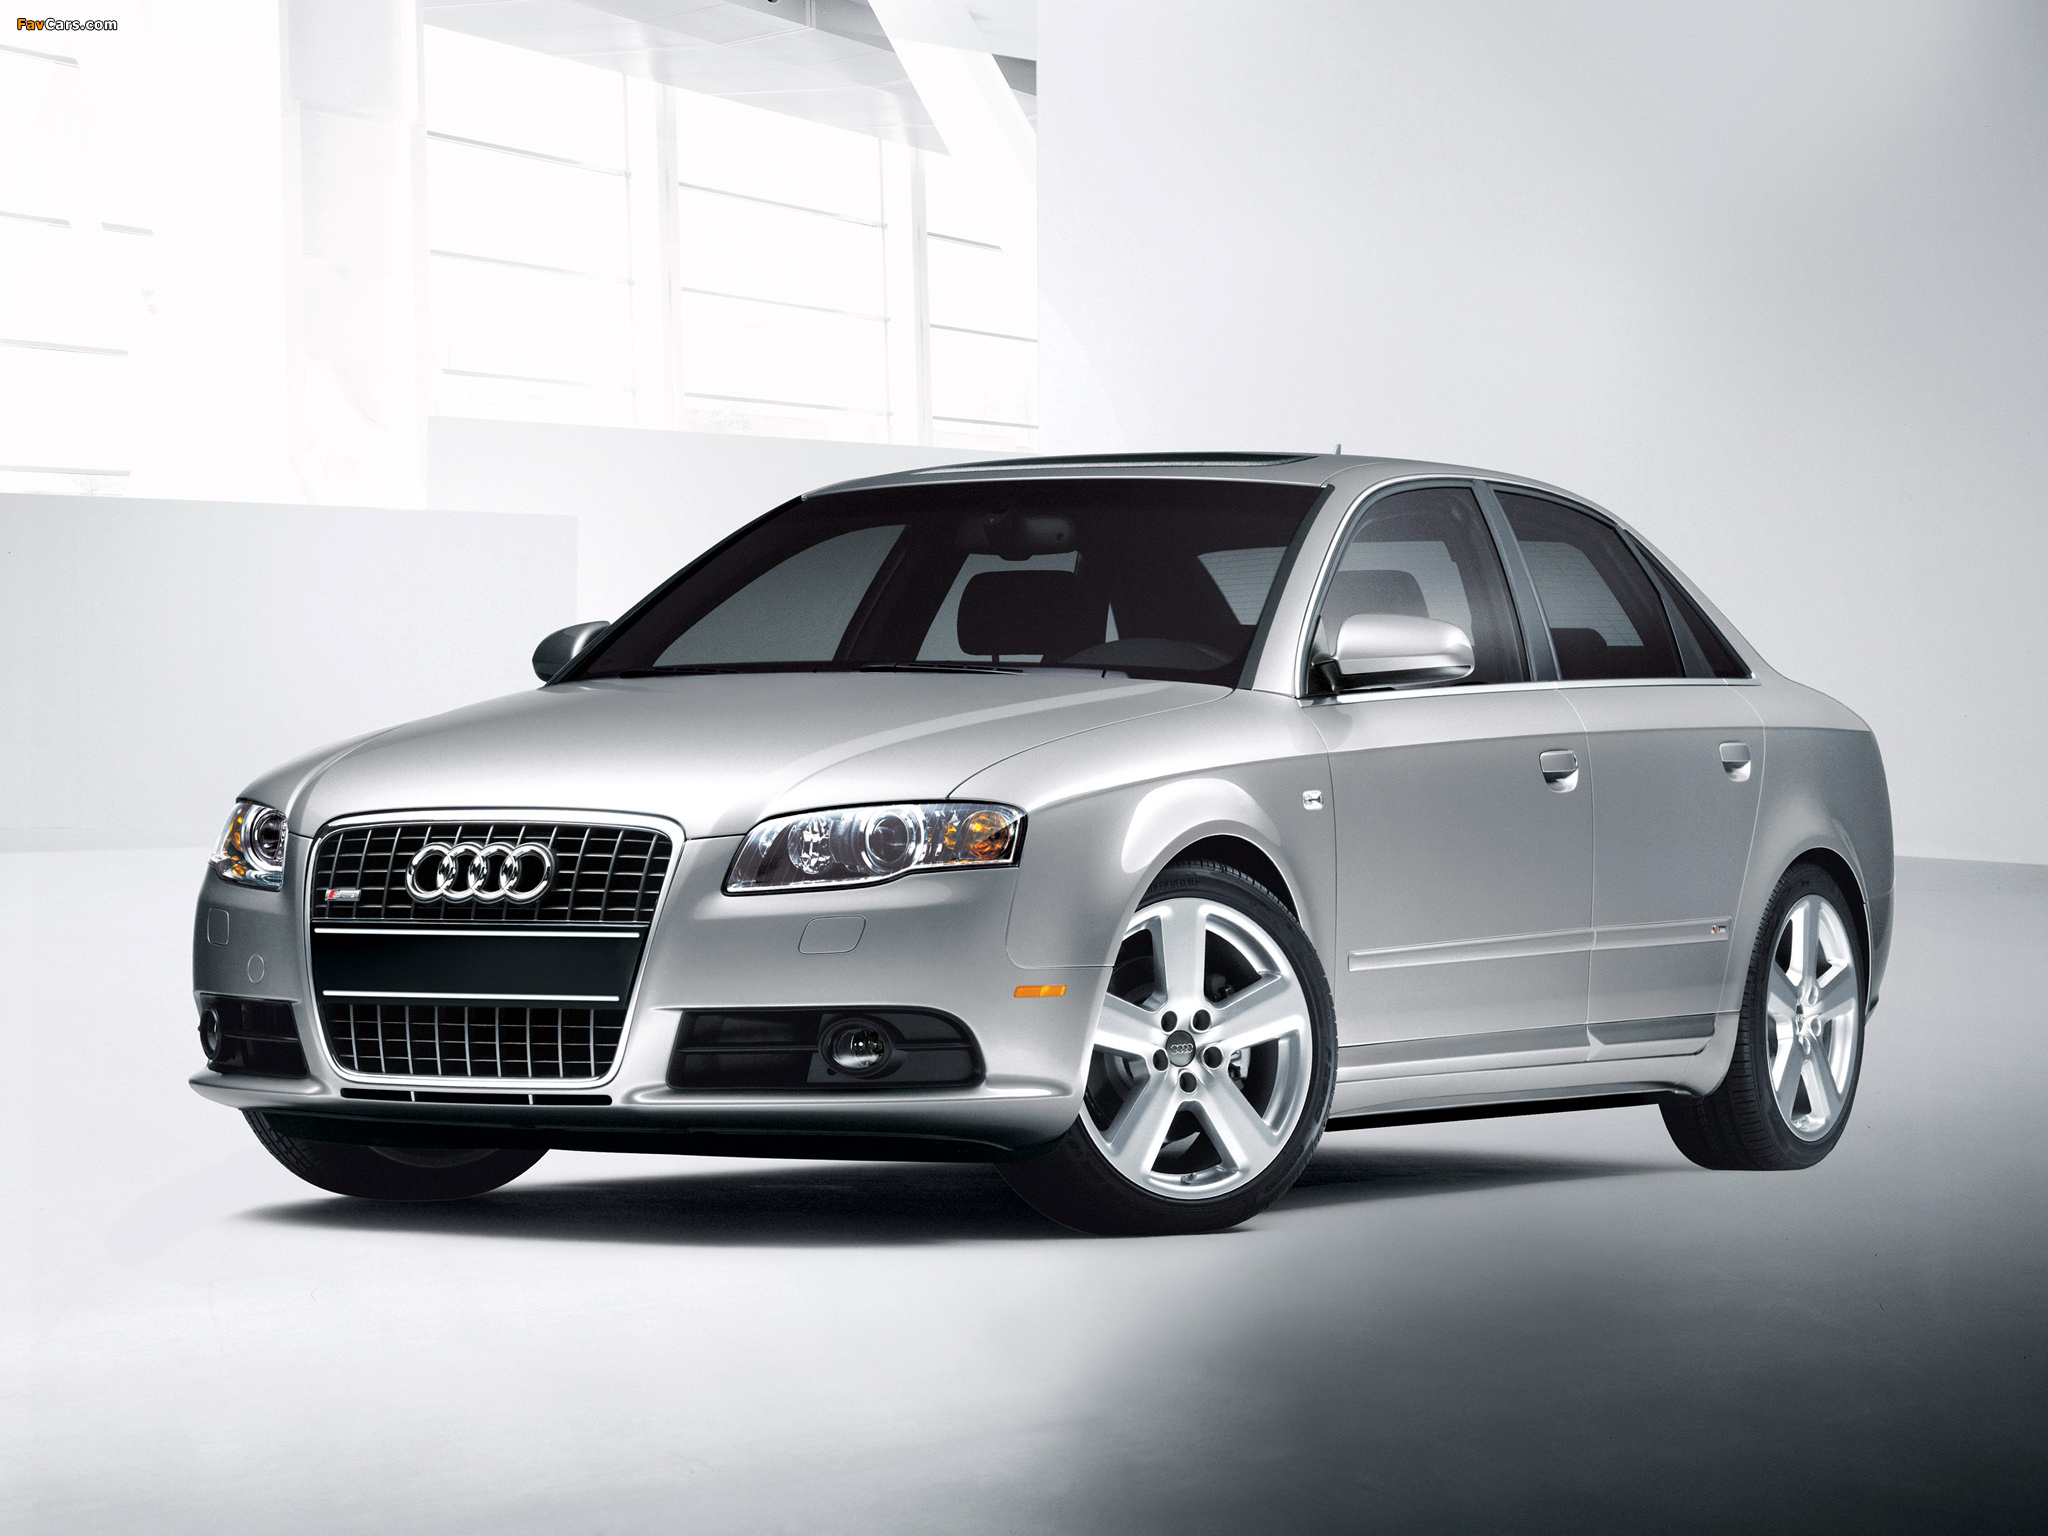 Images Of Audi A4 2 0t S Line Sedan Us Spec B7 8e 2004 2007 2048x1536